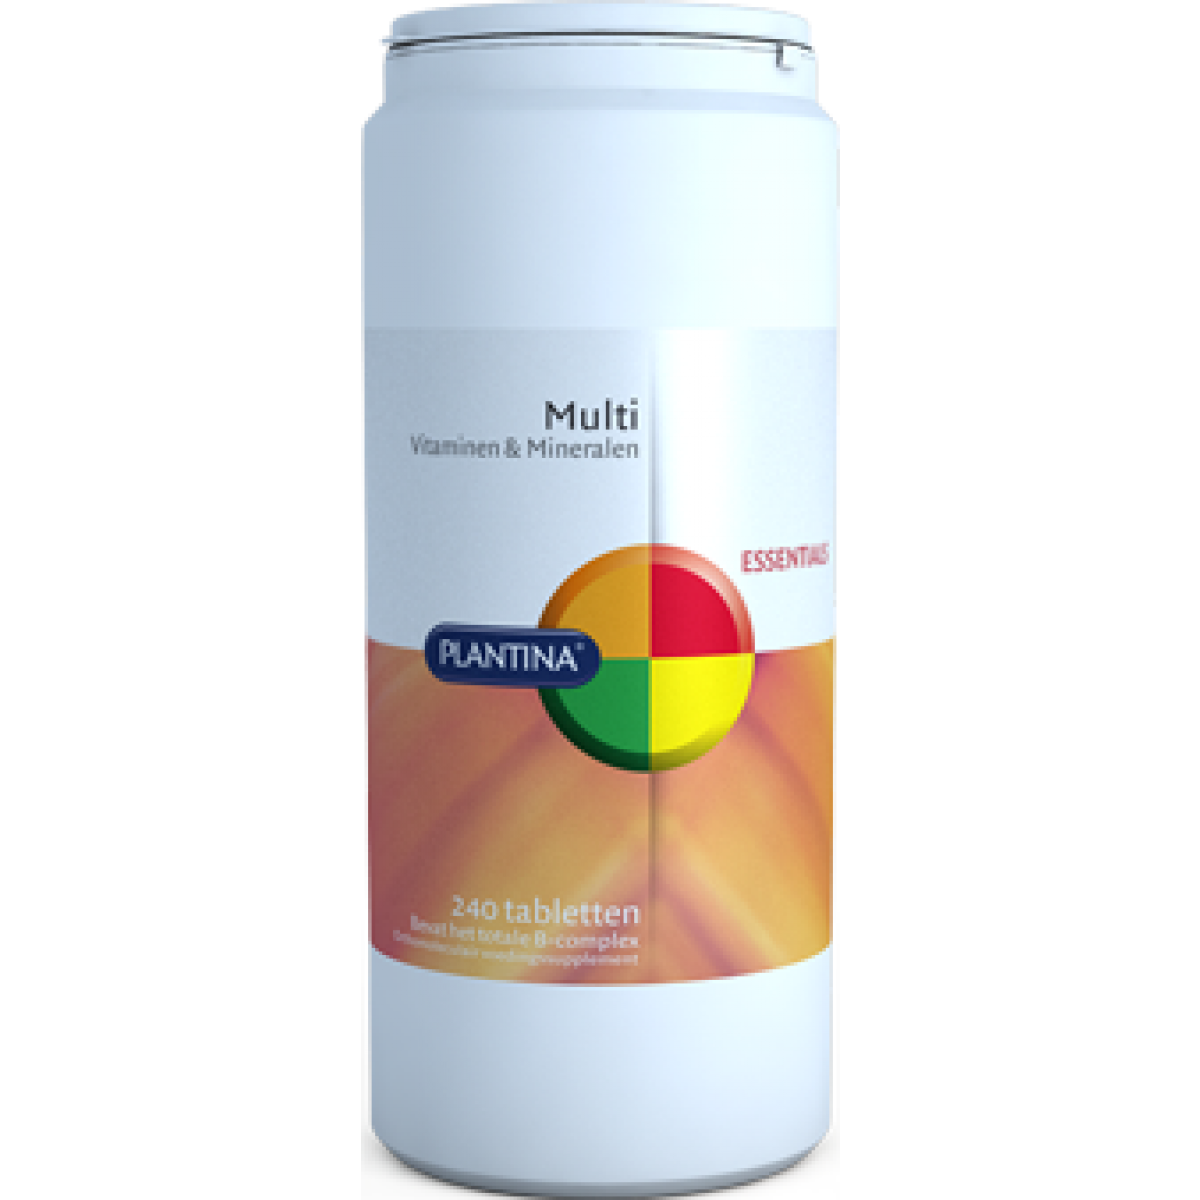 Multi Vitaminen & Mineralen 240 Tabletten